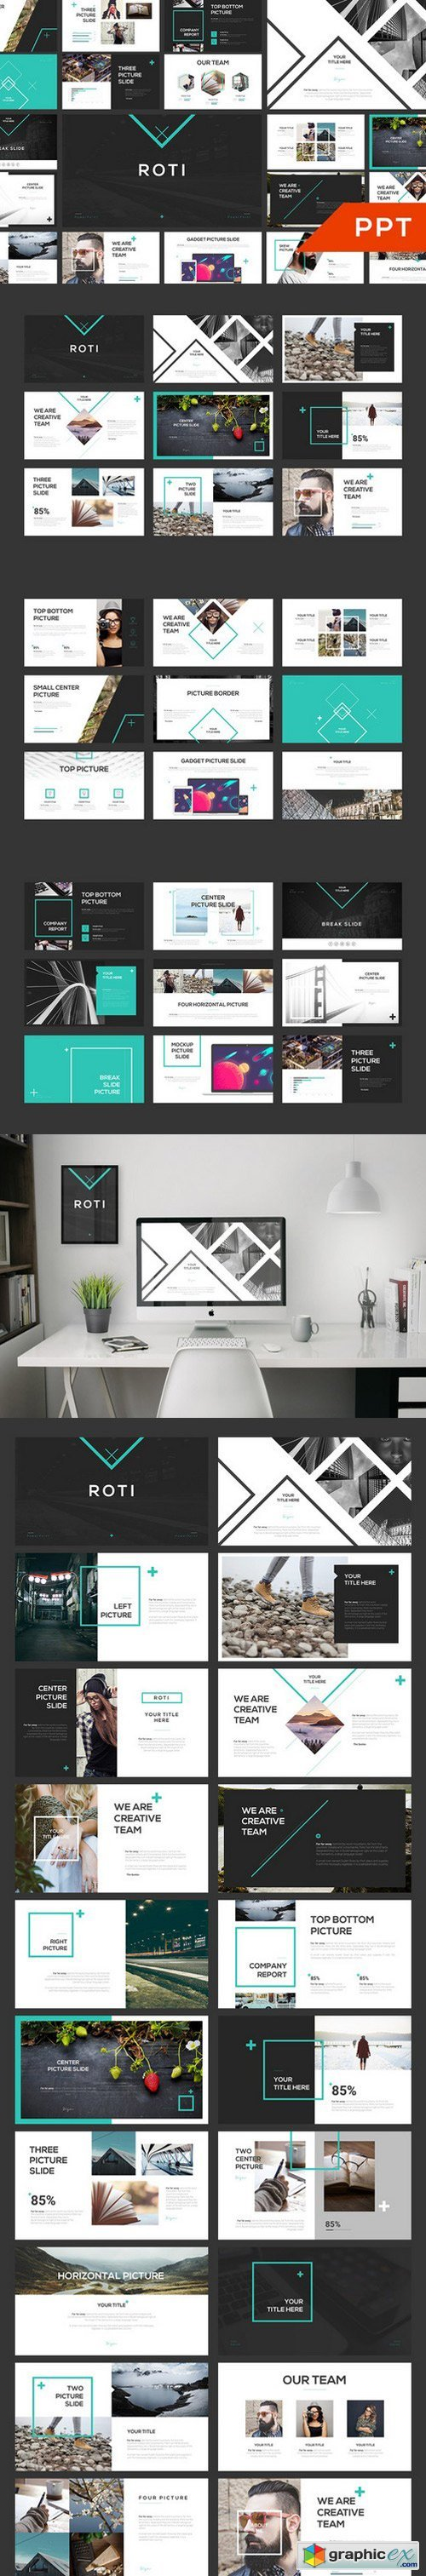 ROTI PowerPoint Template 581732 » Free Download Vector Stock Image ...